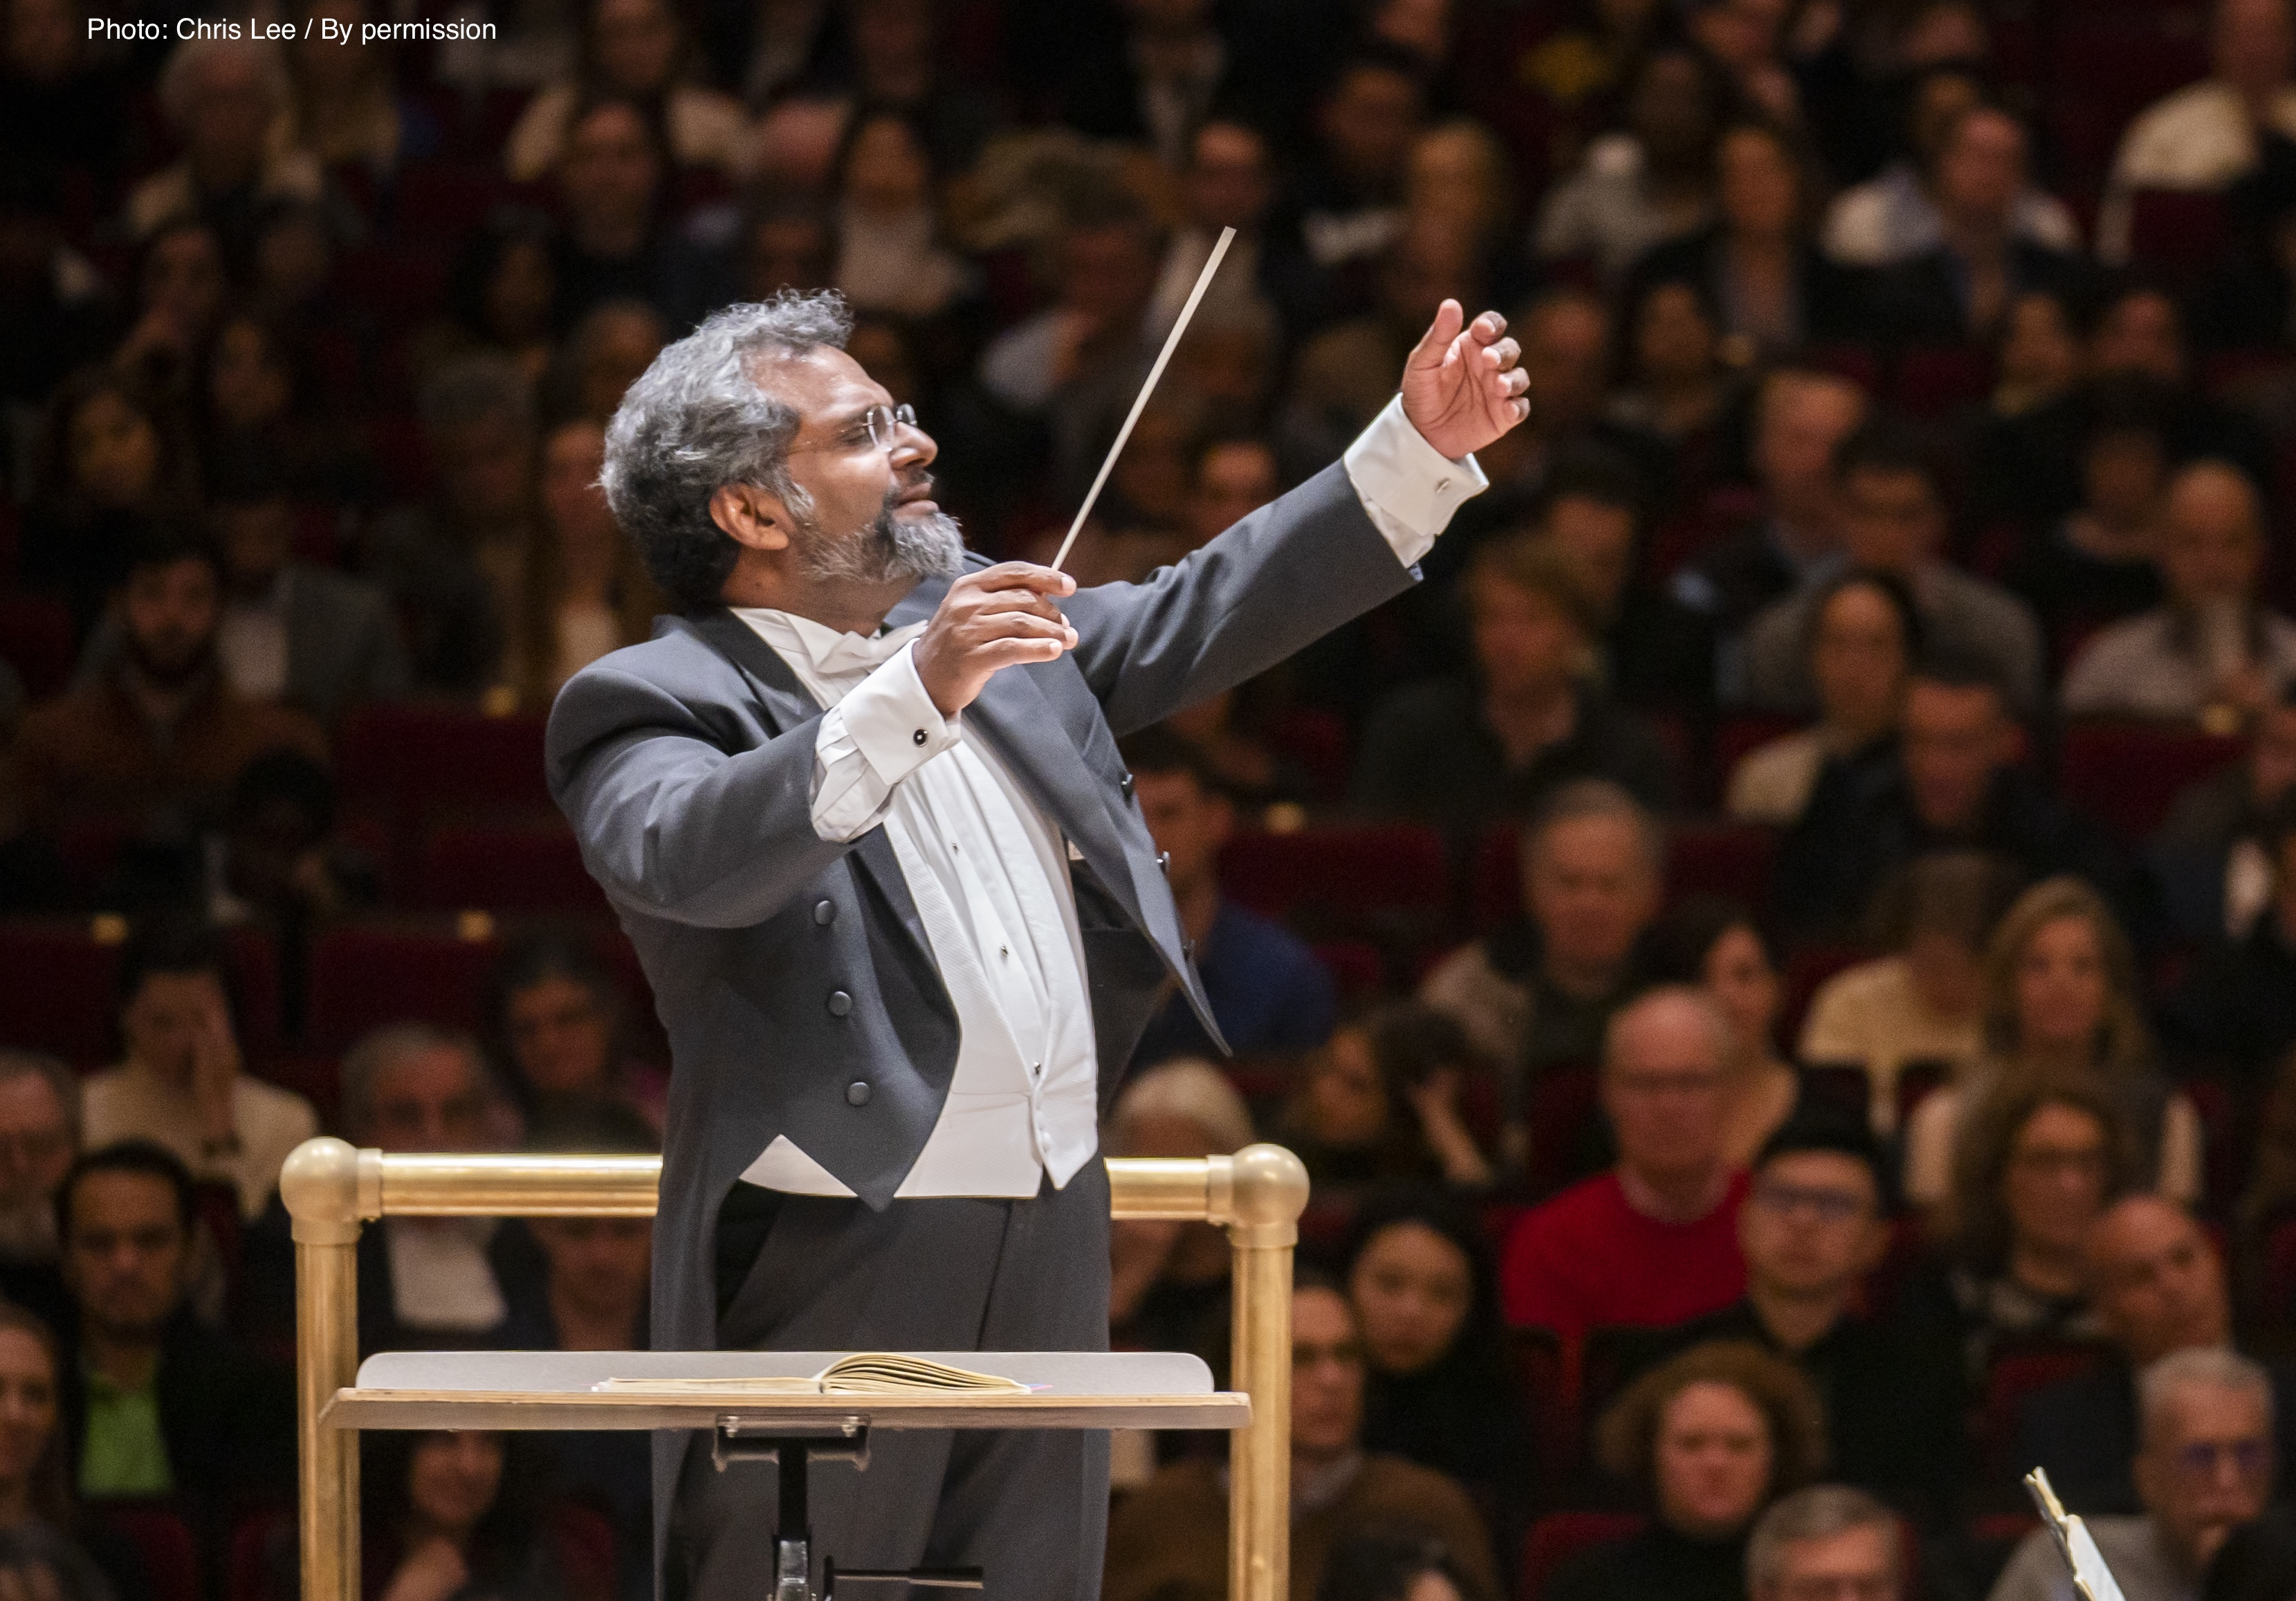 George Mathew conducts Beethoven for The Rohingya: A Concert For the Rohingya Refugees,  A Benefit for Doctors Without Borders / Médecins Sans Frontières at Carnegie Hall, 1/28/19. Photo by Chris Lee